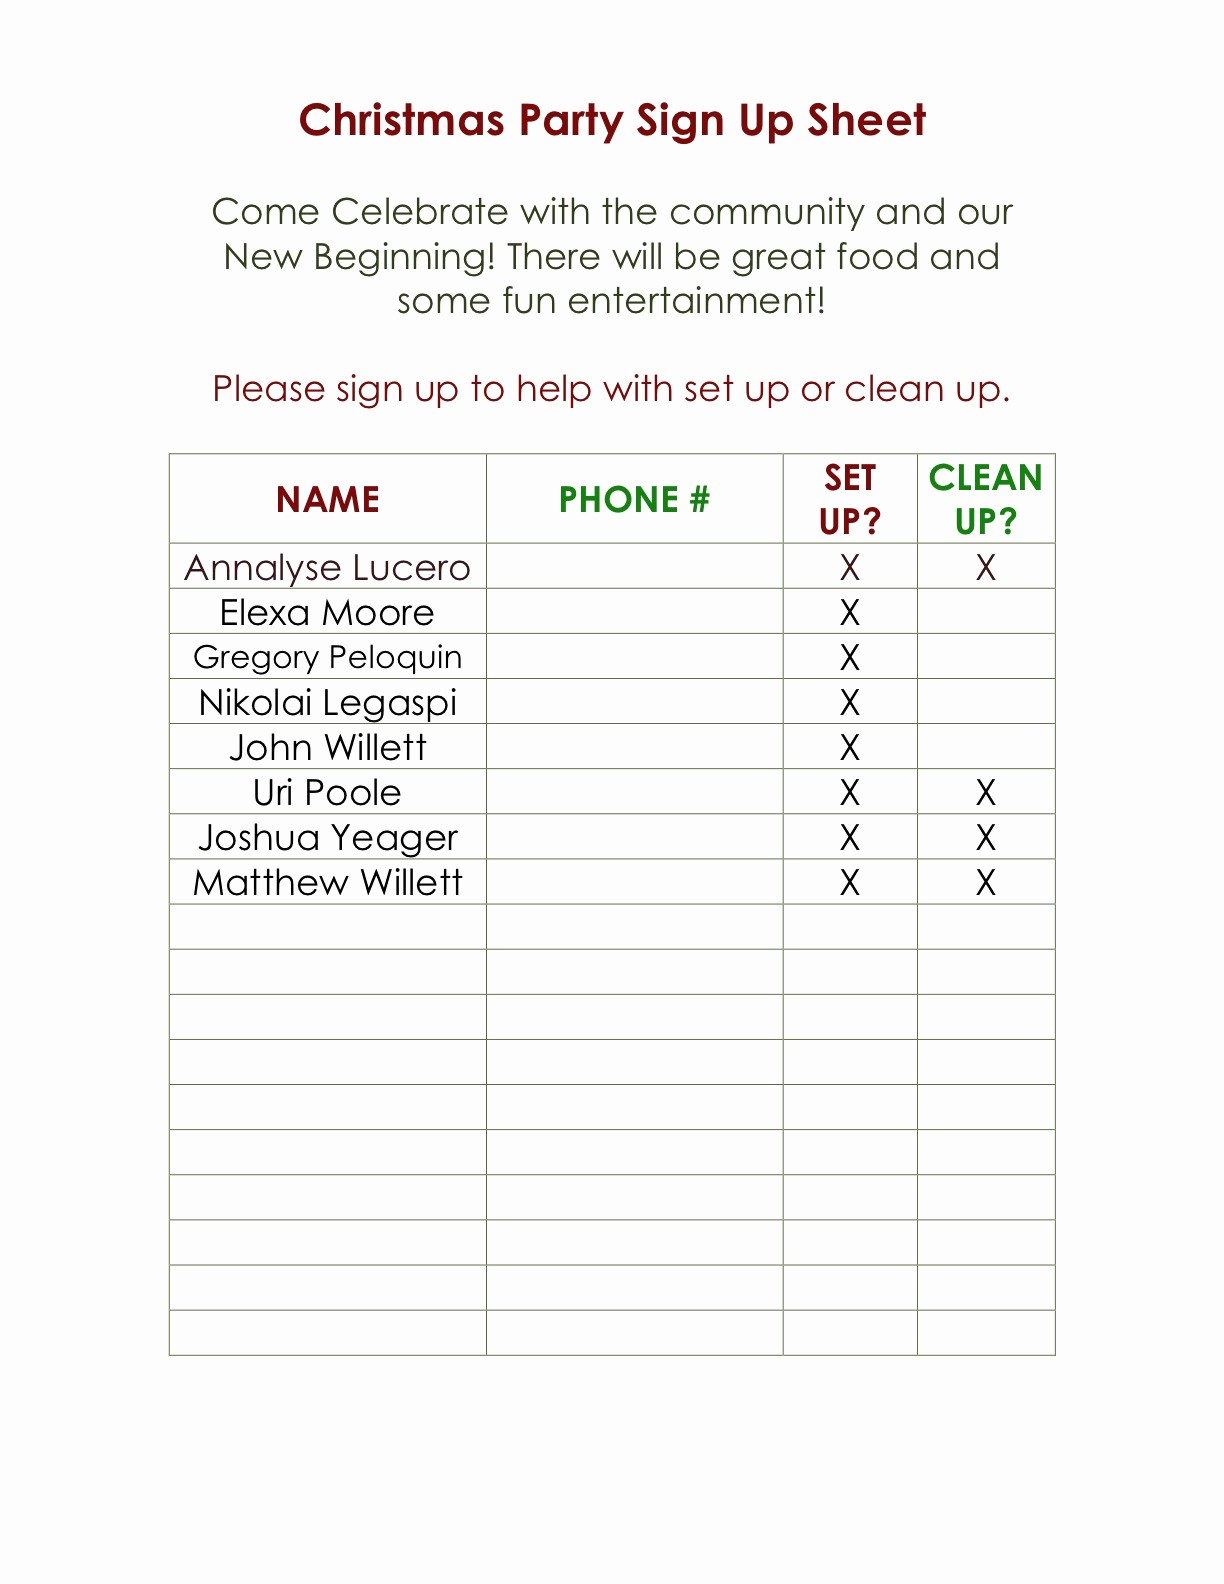 Holiday Sign Up Sheet Templates Best Of assumption Catholic Youth Group Parish Christmas Party